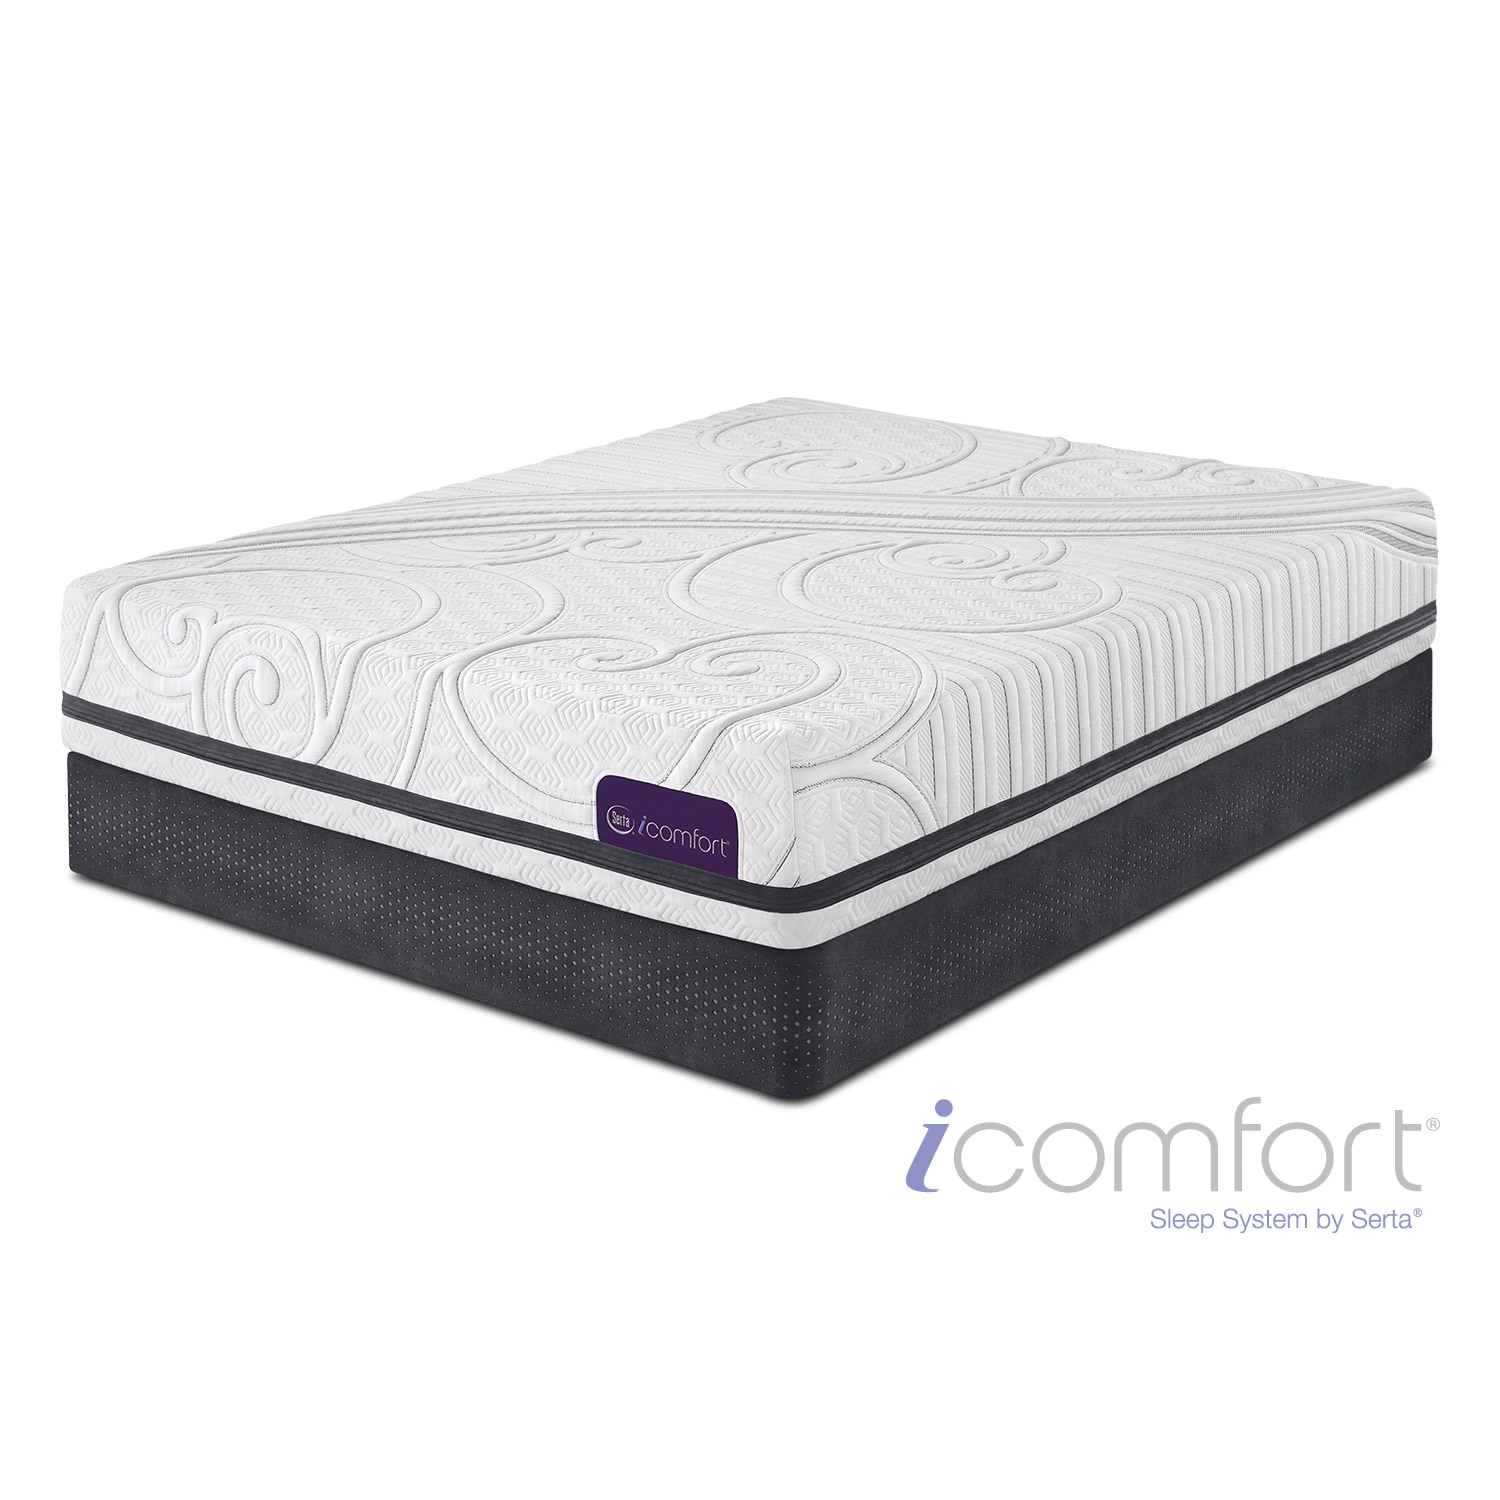 Mattresses and Bedding - Savant III Firm Queen Mattress/Foundation Set